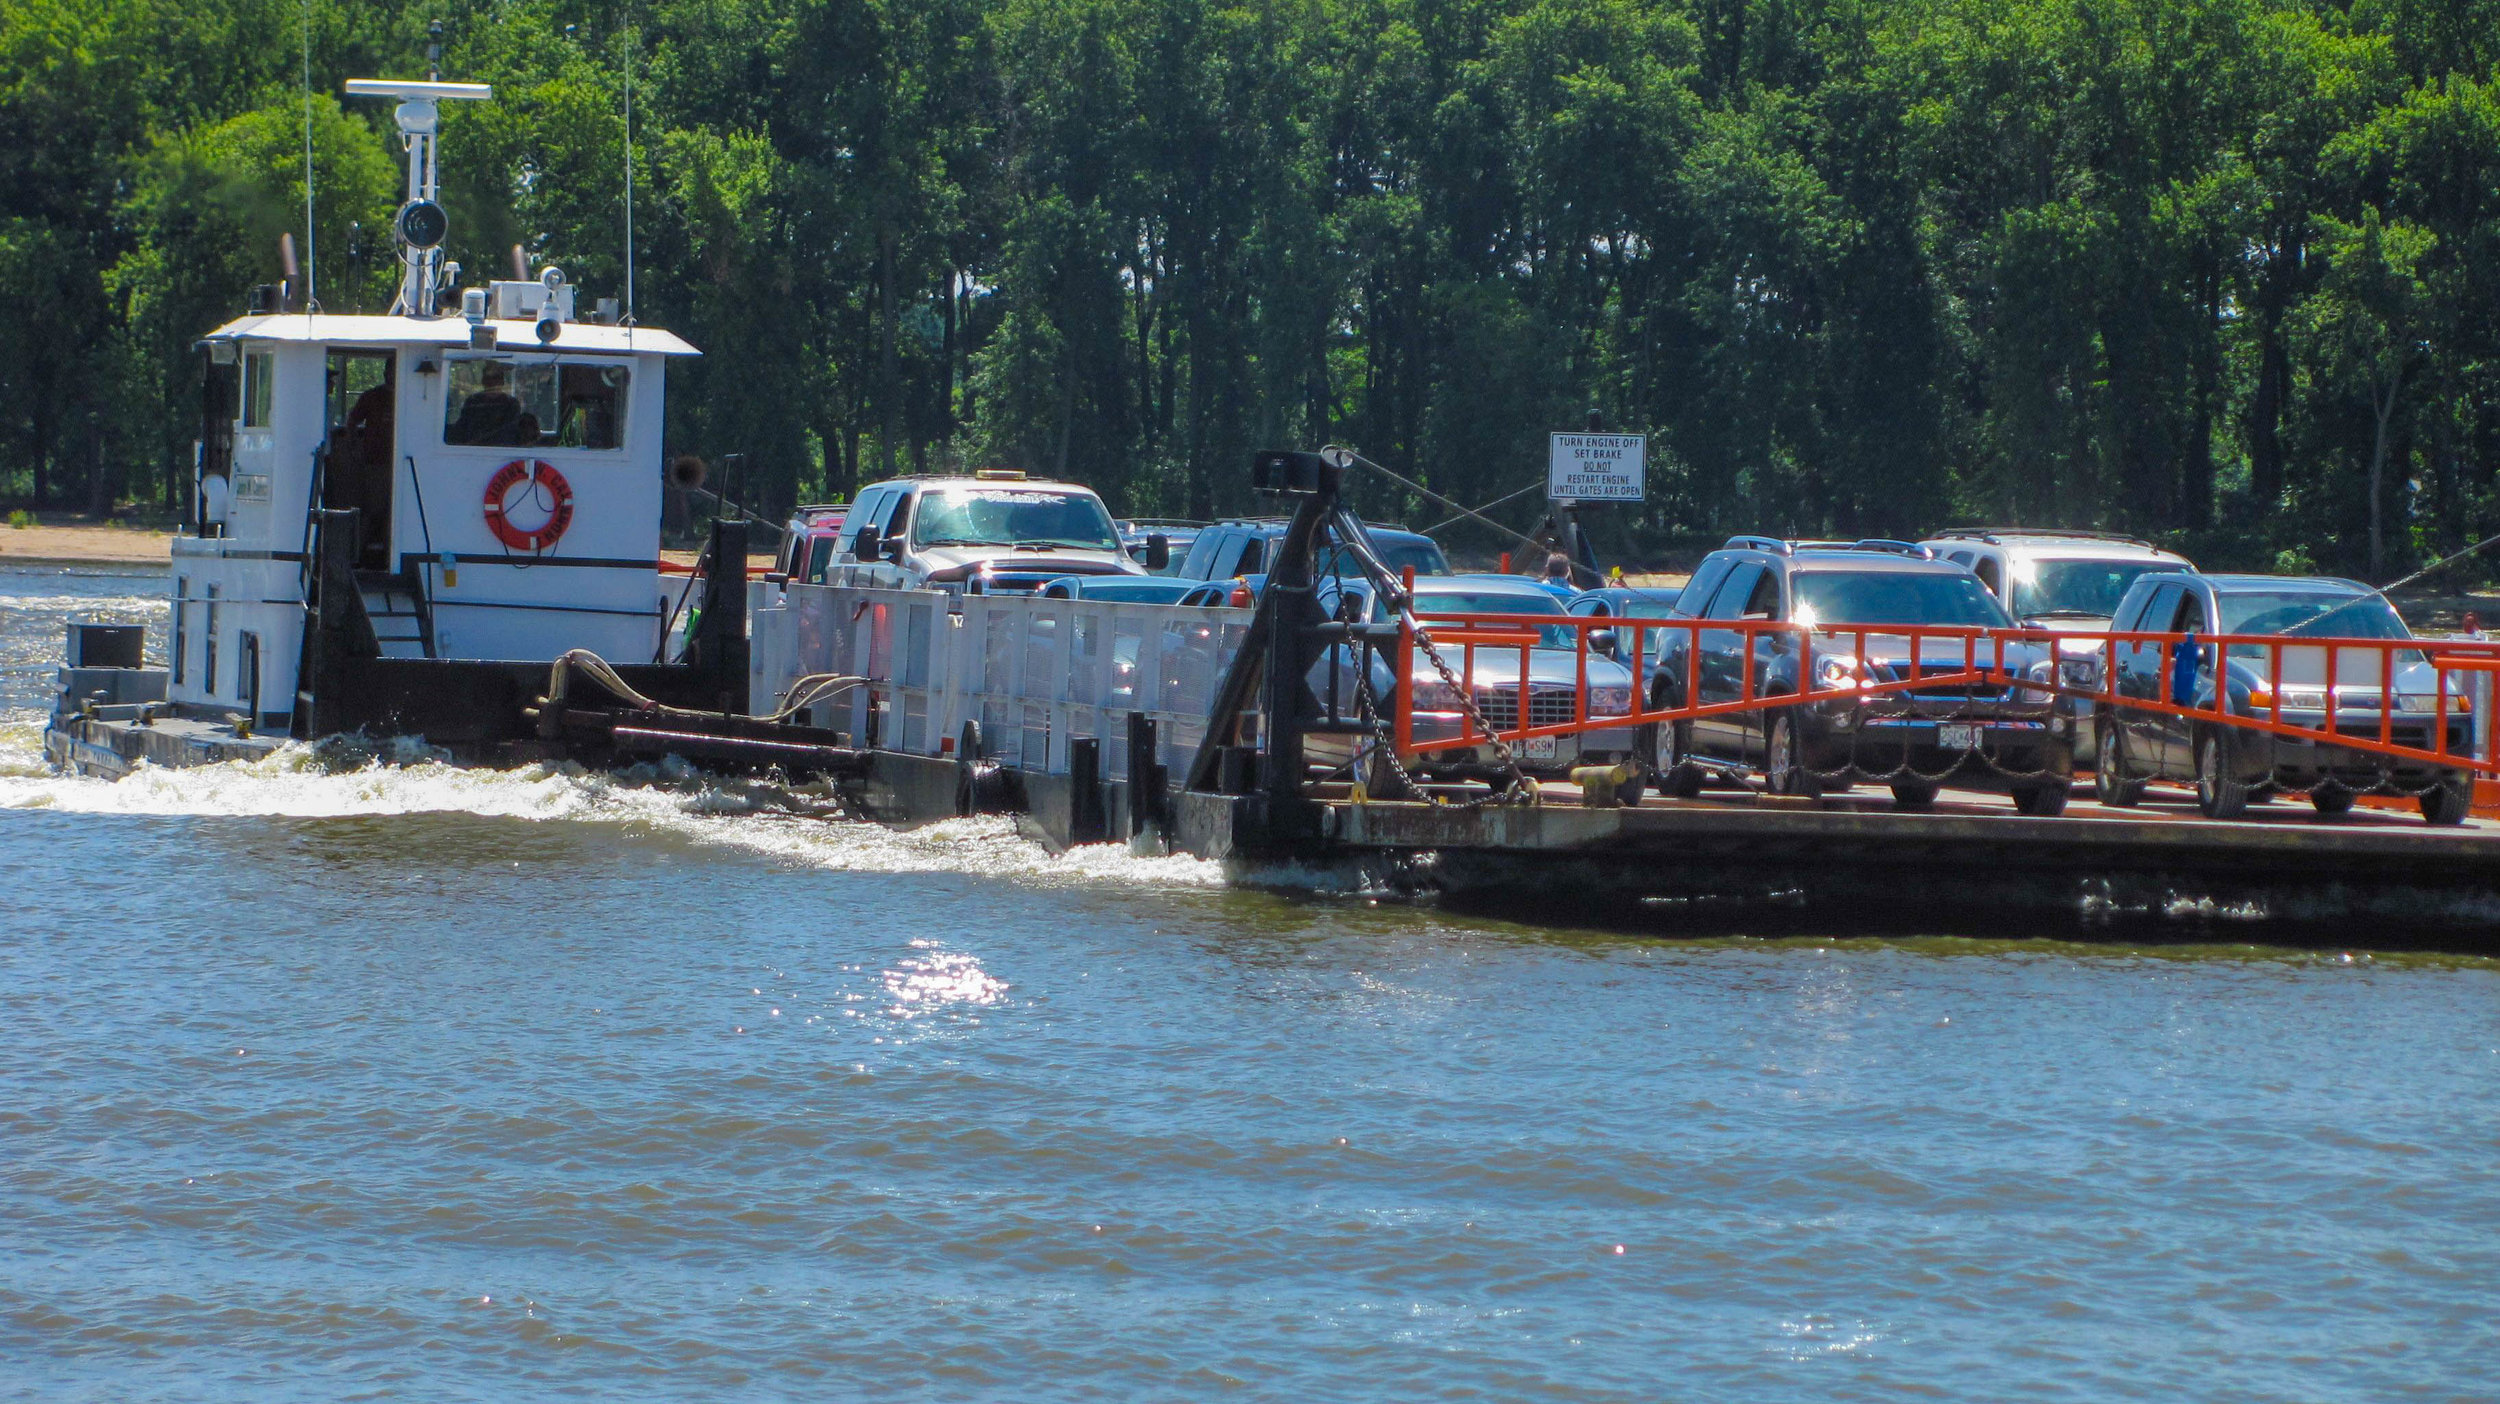 grafton_ferry_07282013_alr-3428.jpg